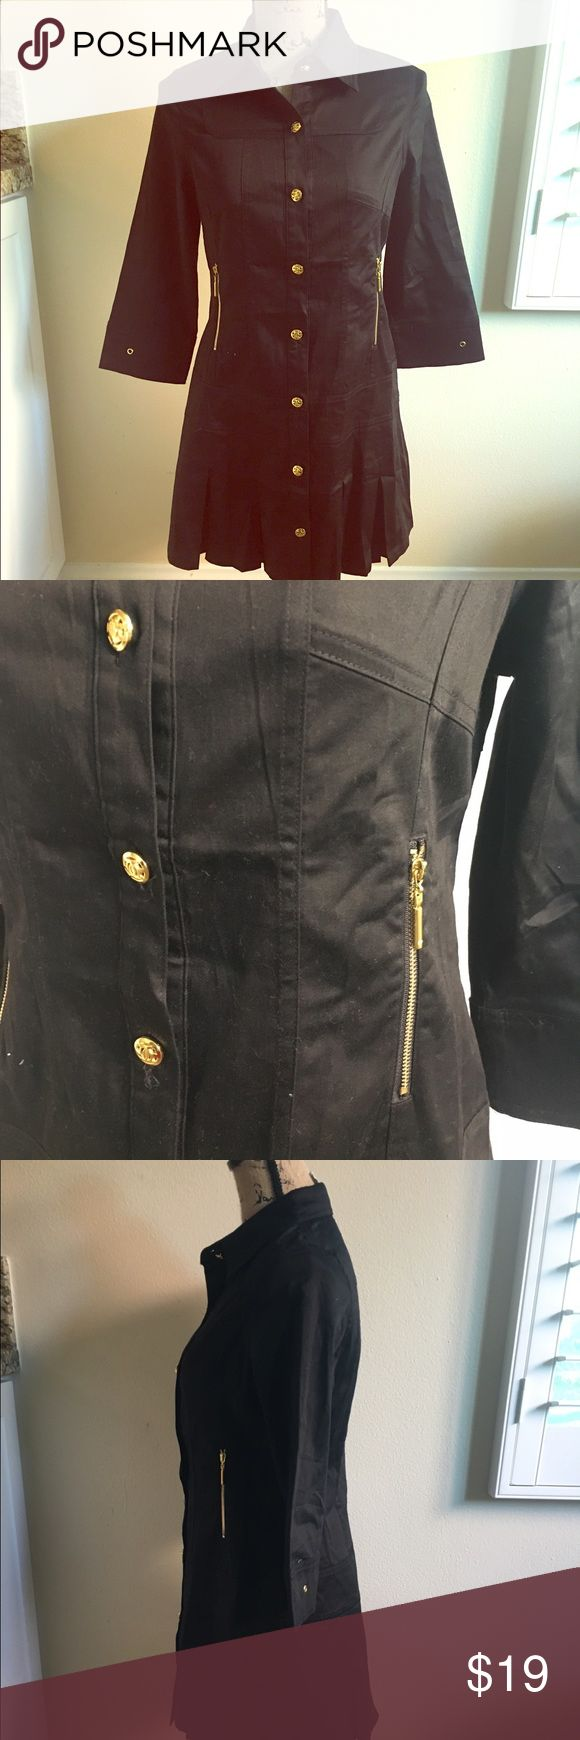 Black and gold accented loose fitted jacket Thin light almost canvas material soooo cute over almost any outfit. Worn once! Just above knee length. Can be dressed down or up. Jackets & Coats